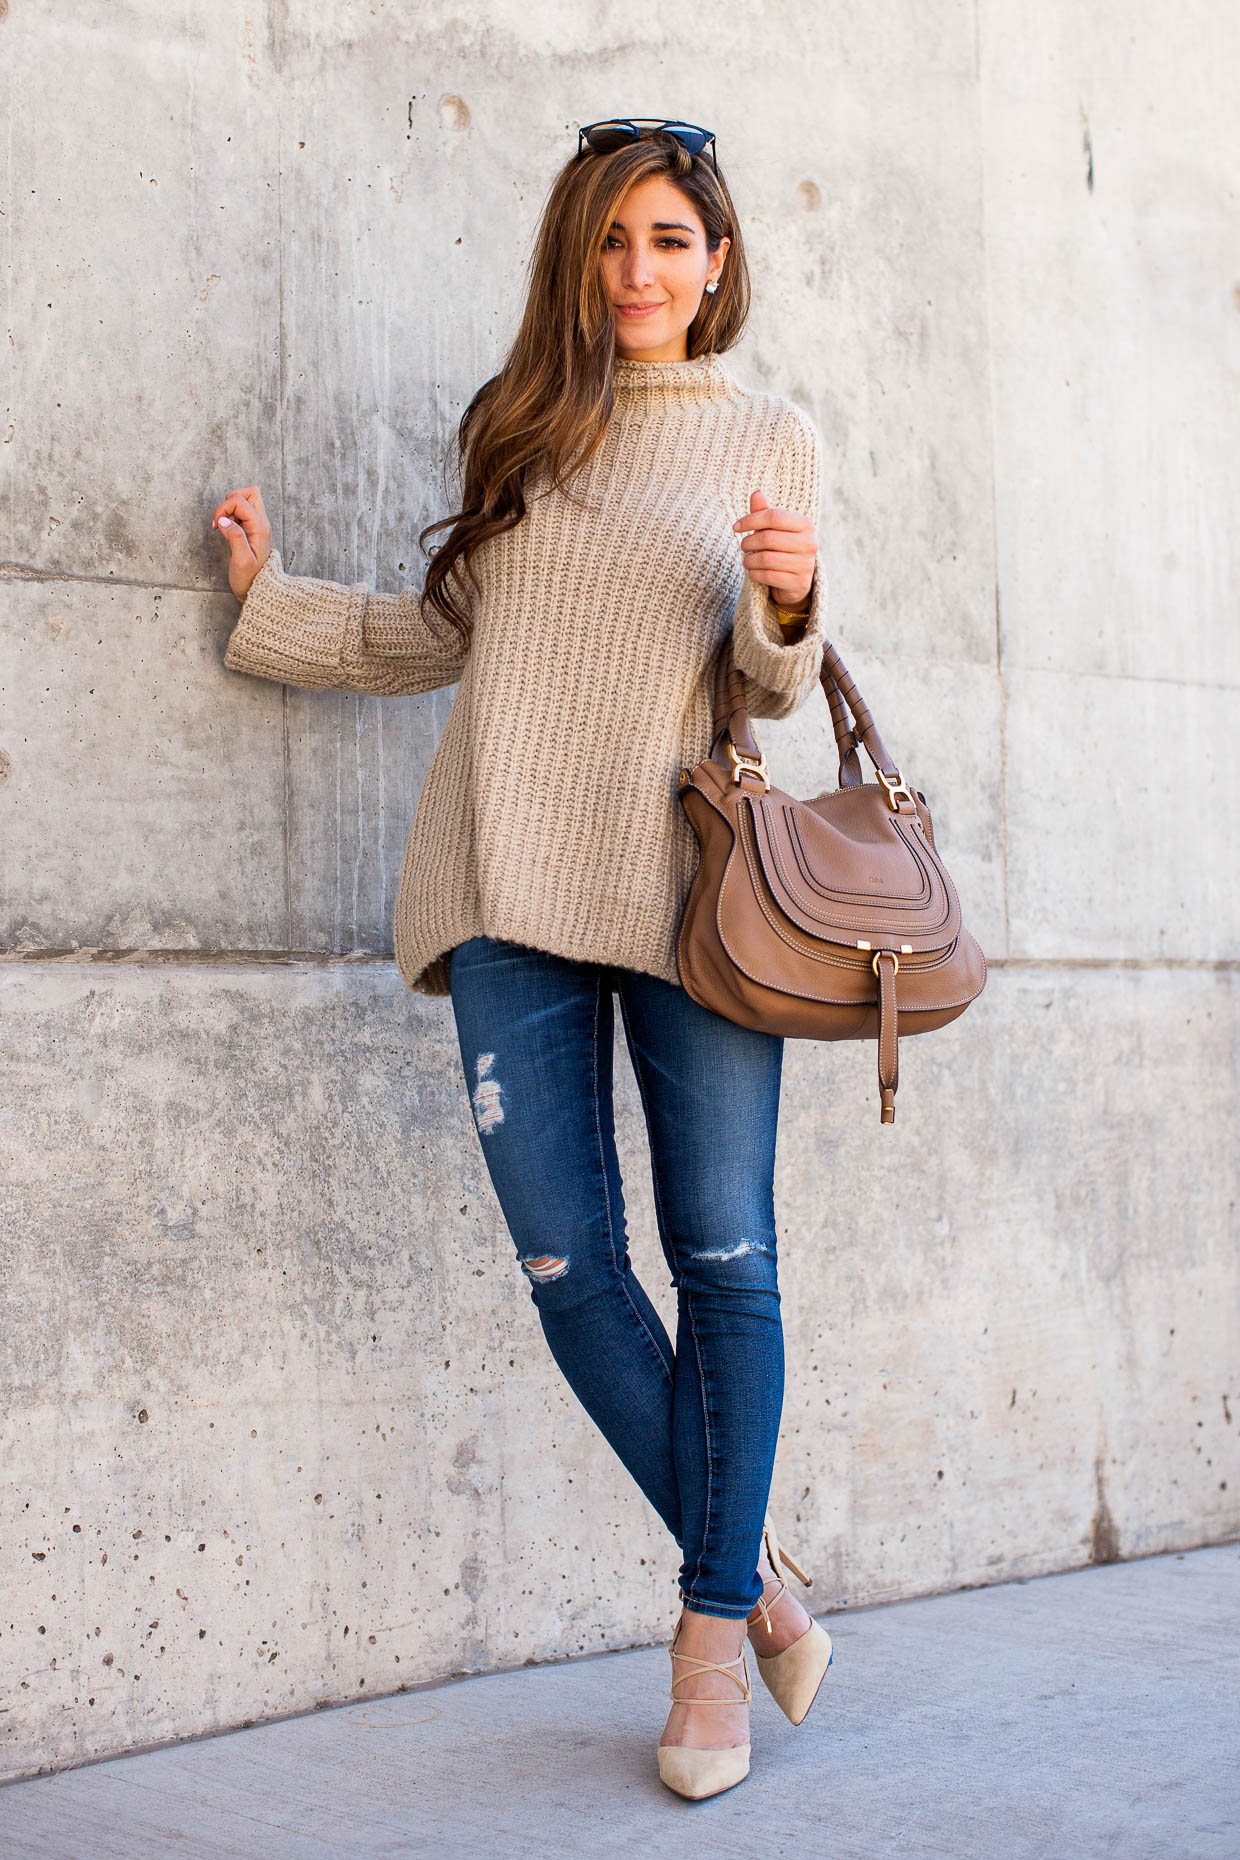 The Darling Detail wears AG distressed jeans